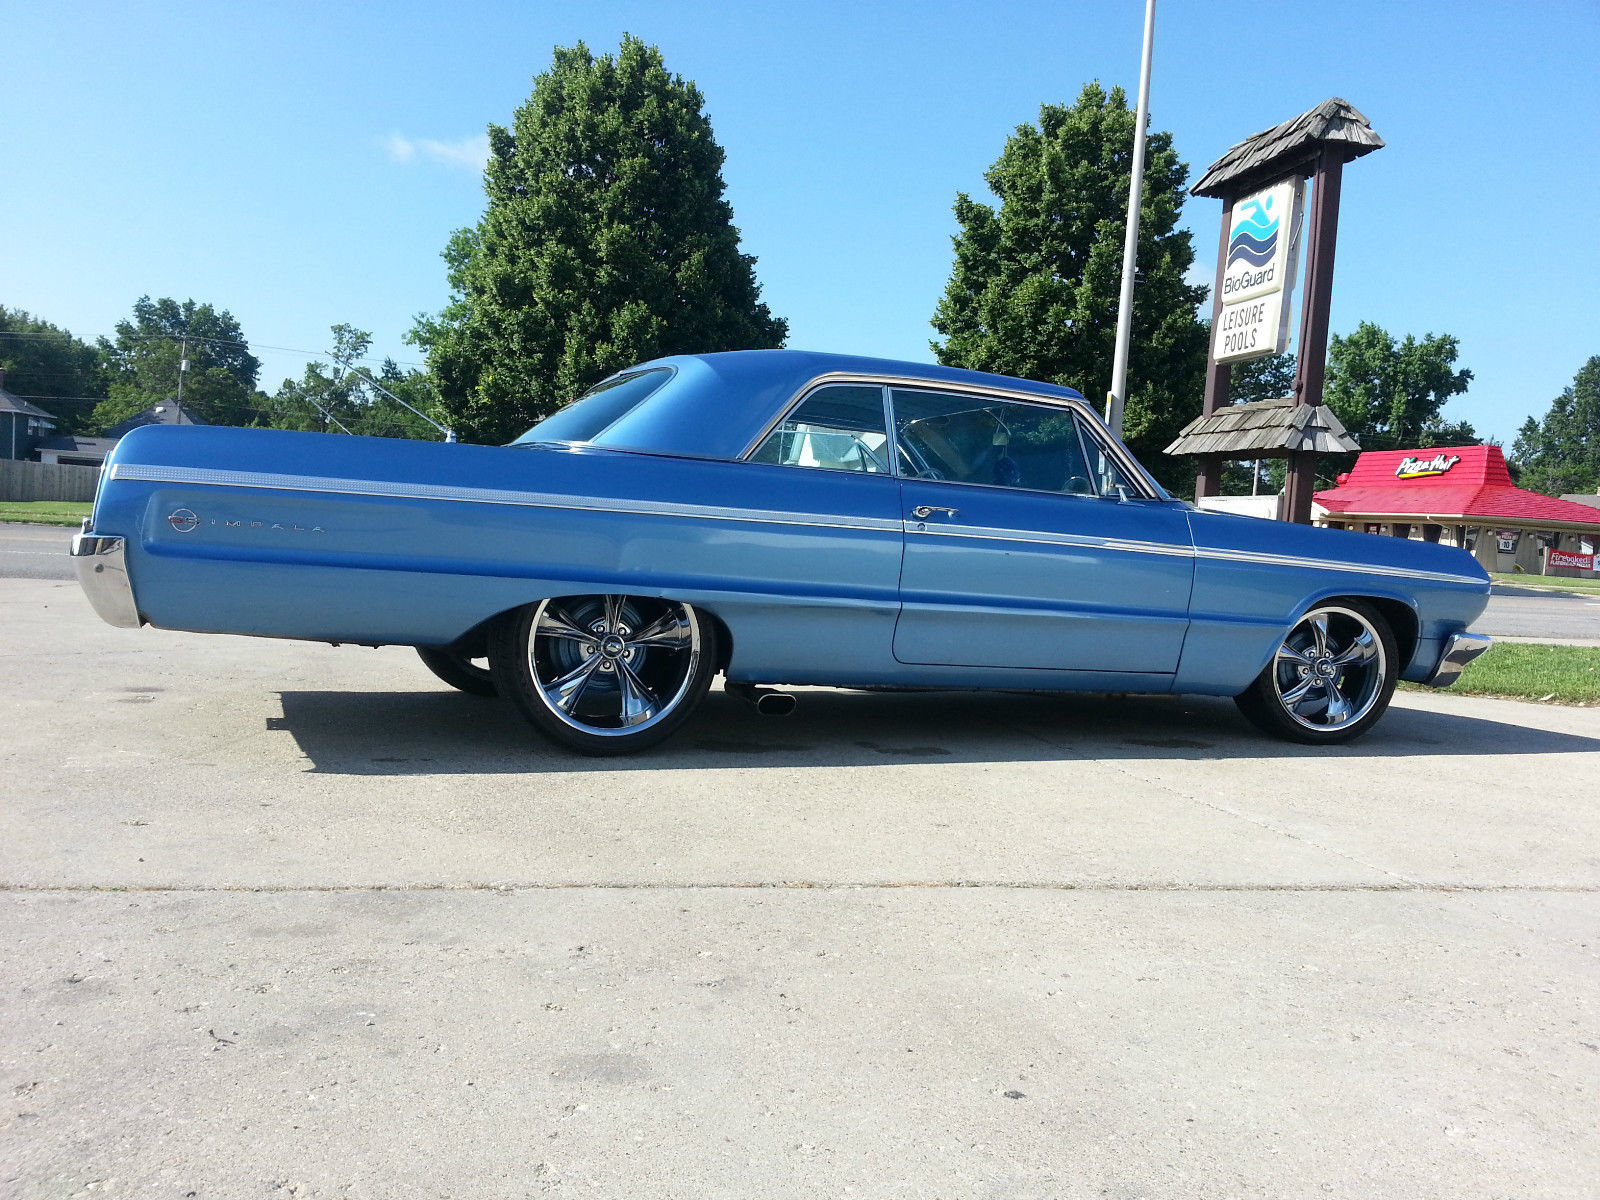 1964 Chevy Impala SS | For Sale Friday - Rides Magazine